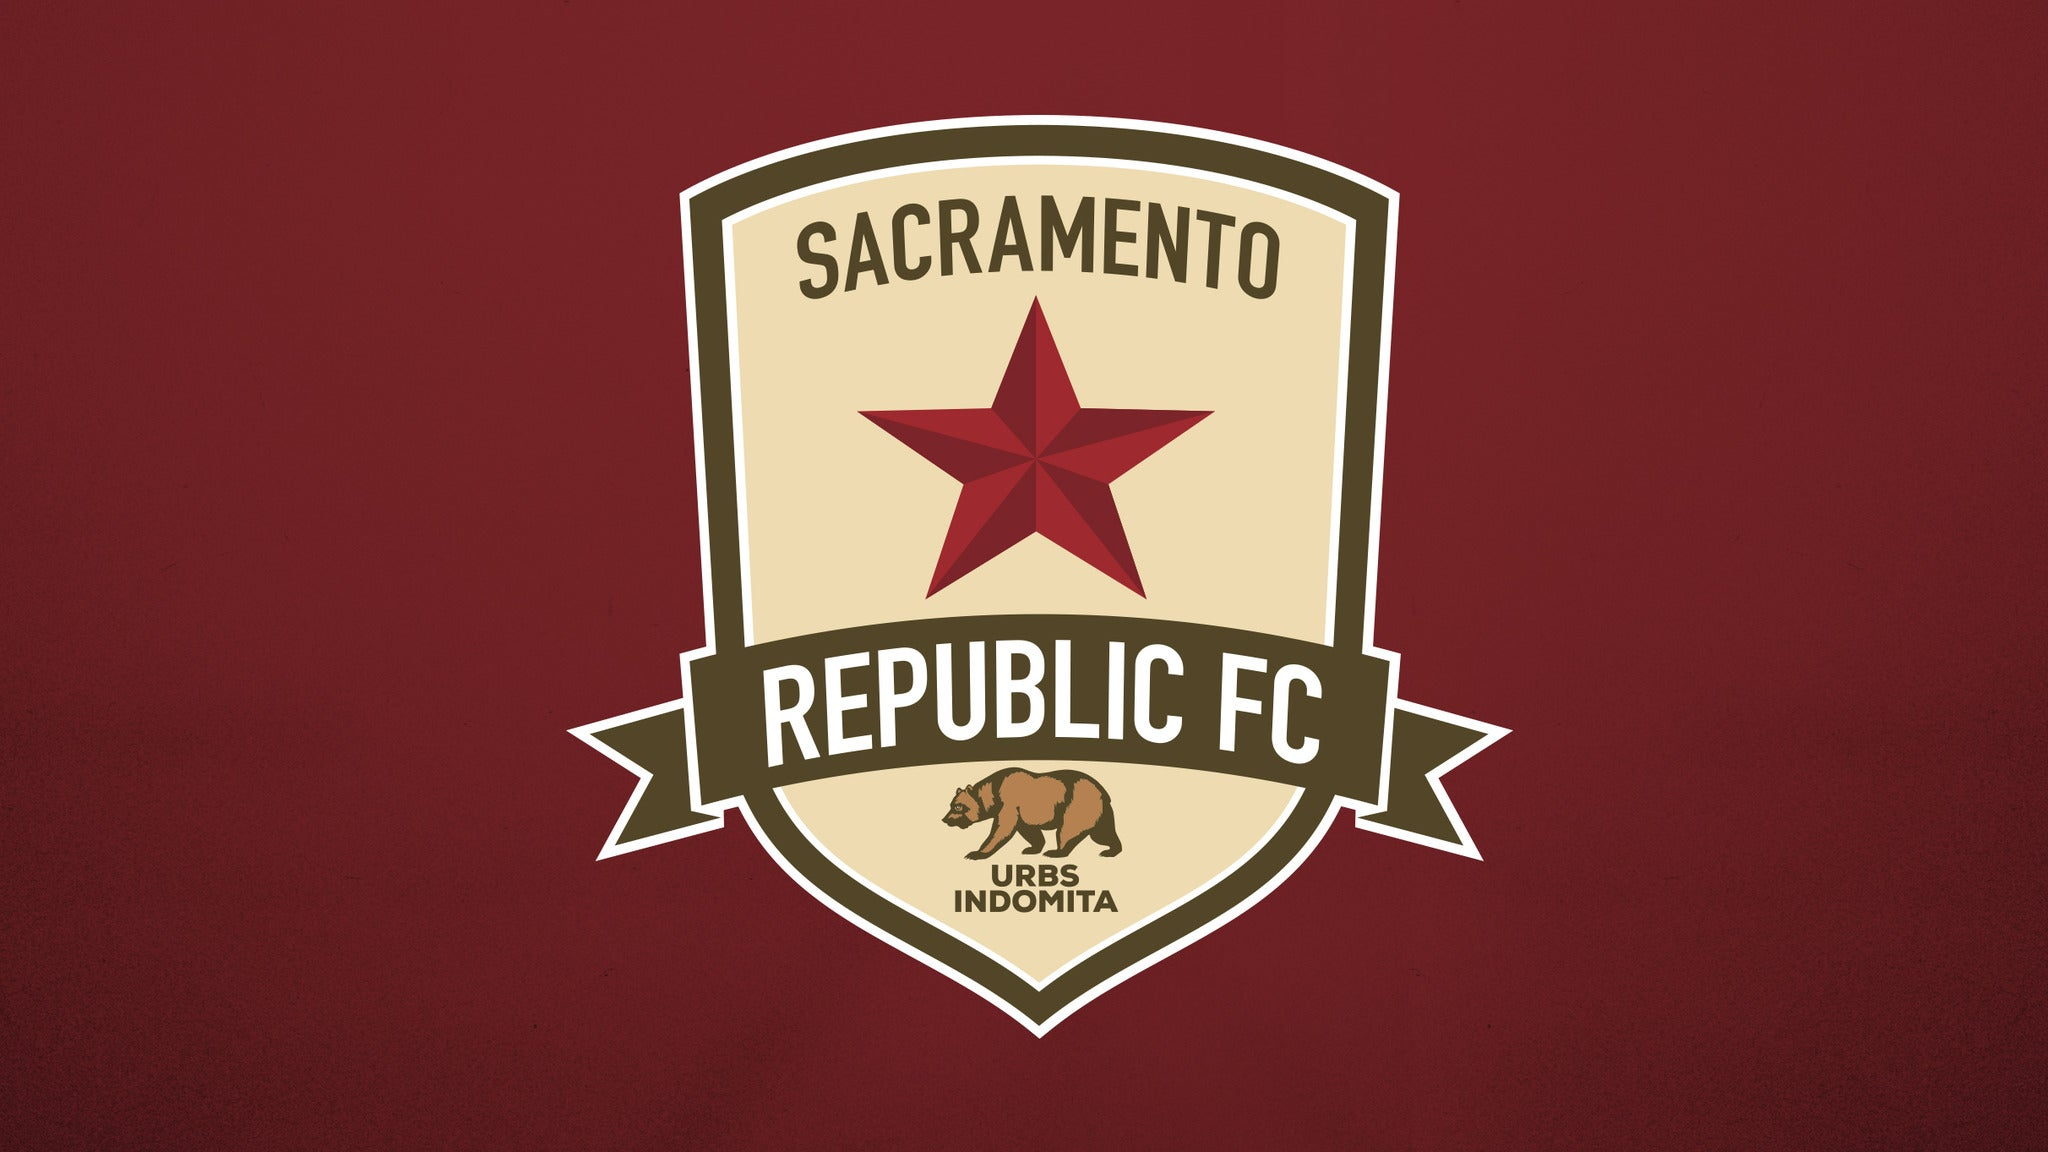 Sacramento Republic FC vs. OKC Energy (Postponed)